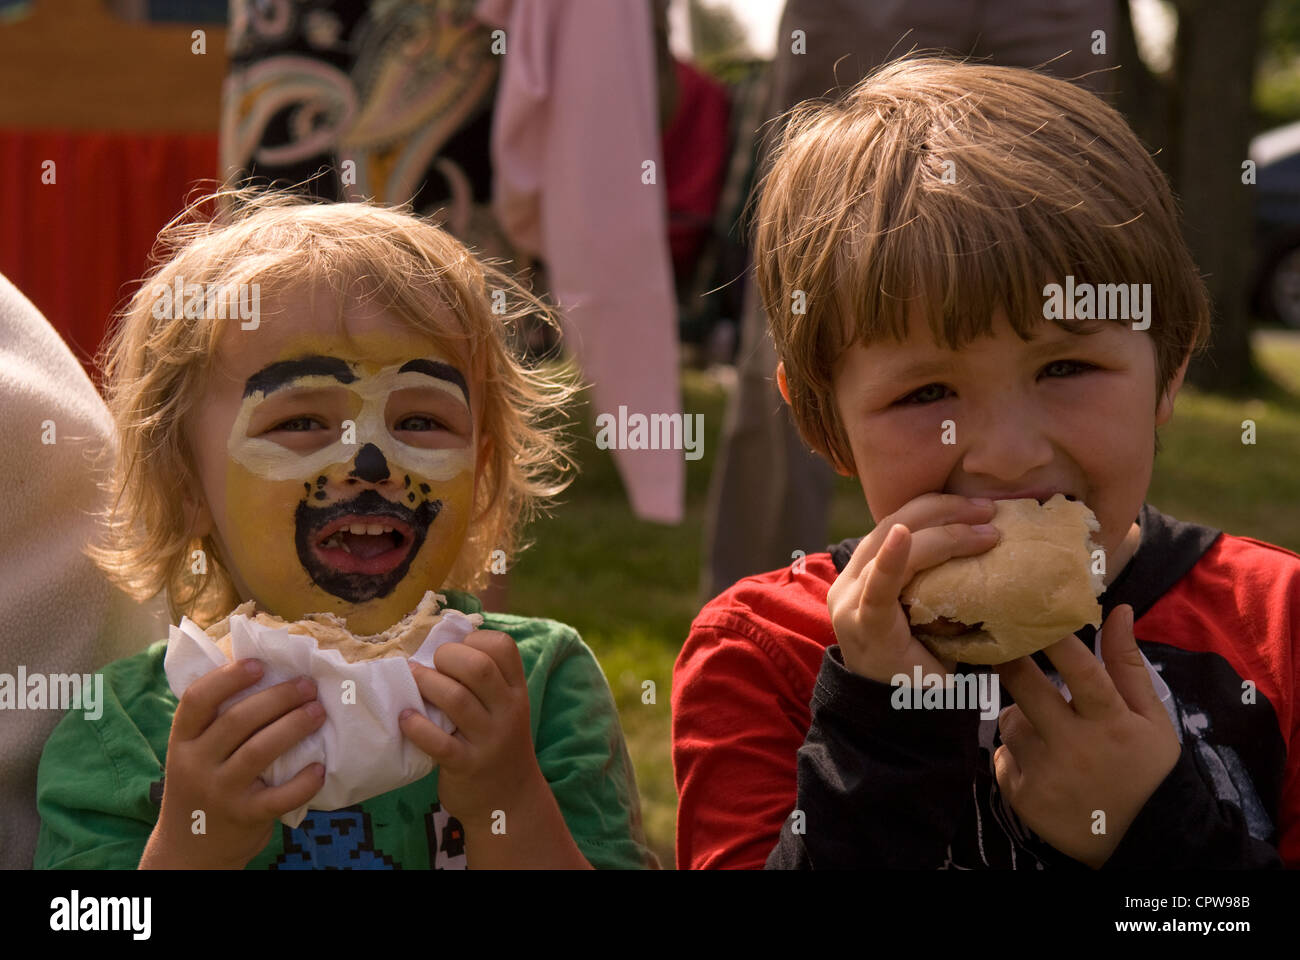 Two young boys eating burgers at Dockenfield fete & Diamond Jubilee celebration day, Dockenfield, Surrey, UK. - Stock Image